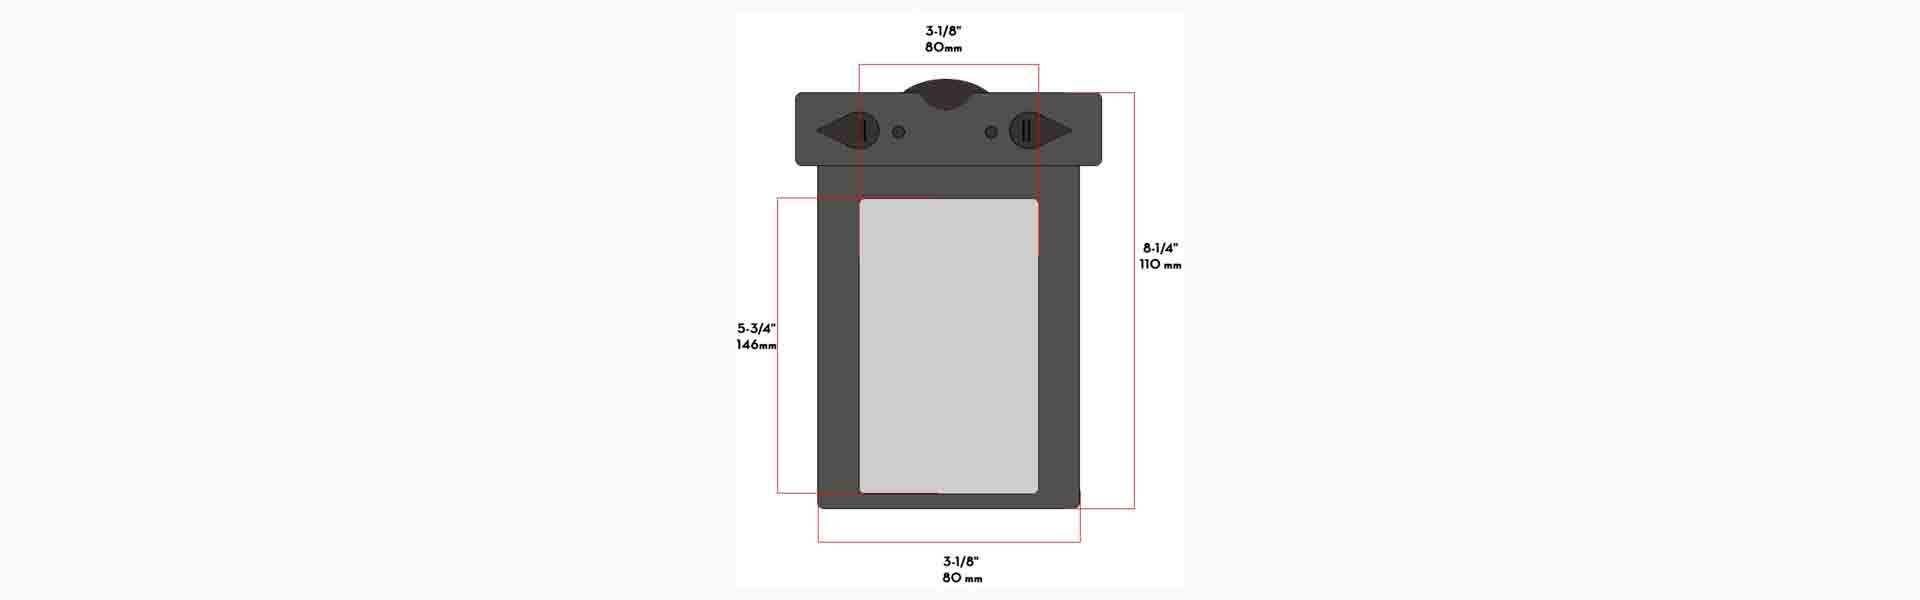 product_dimensions